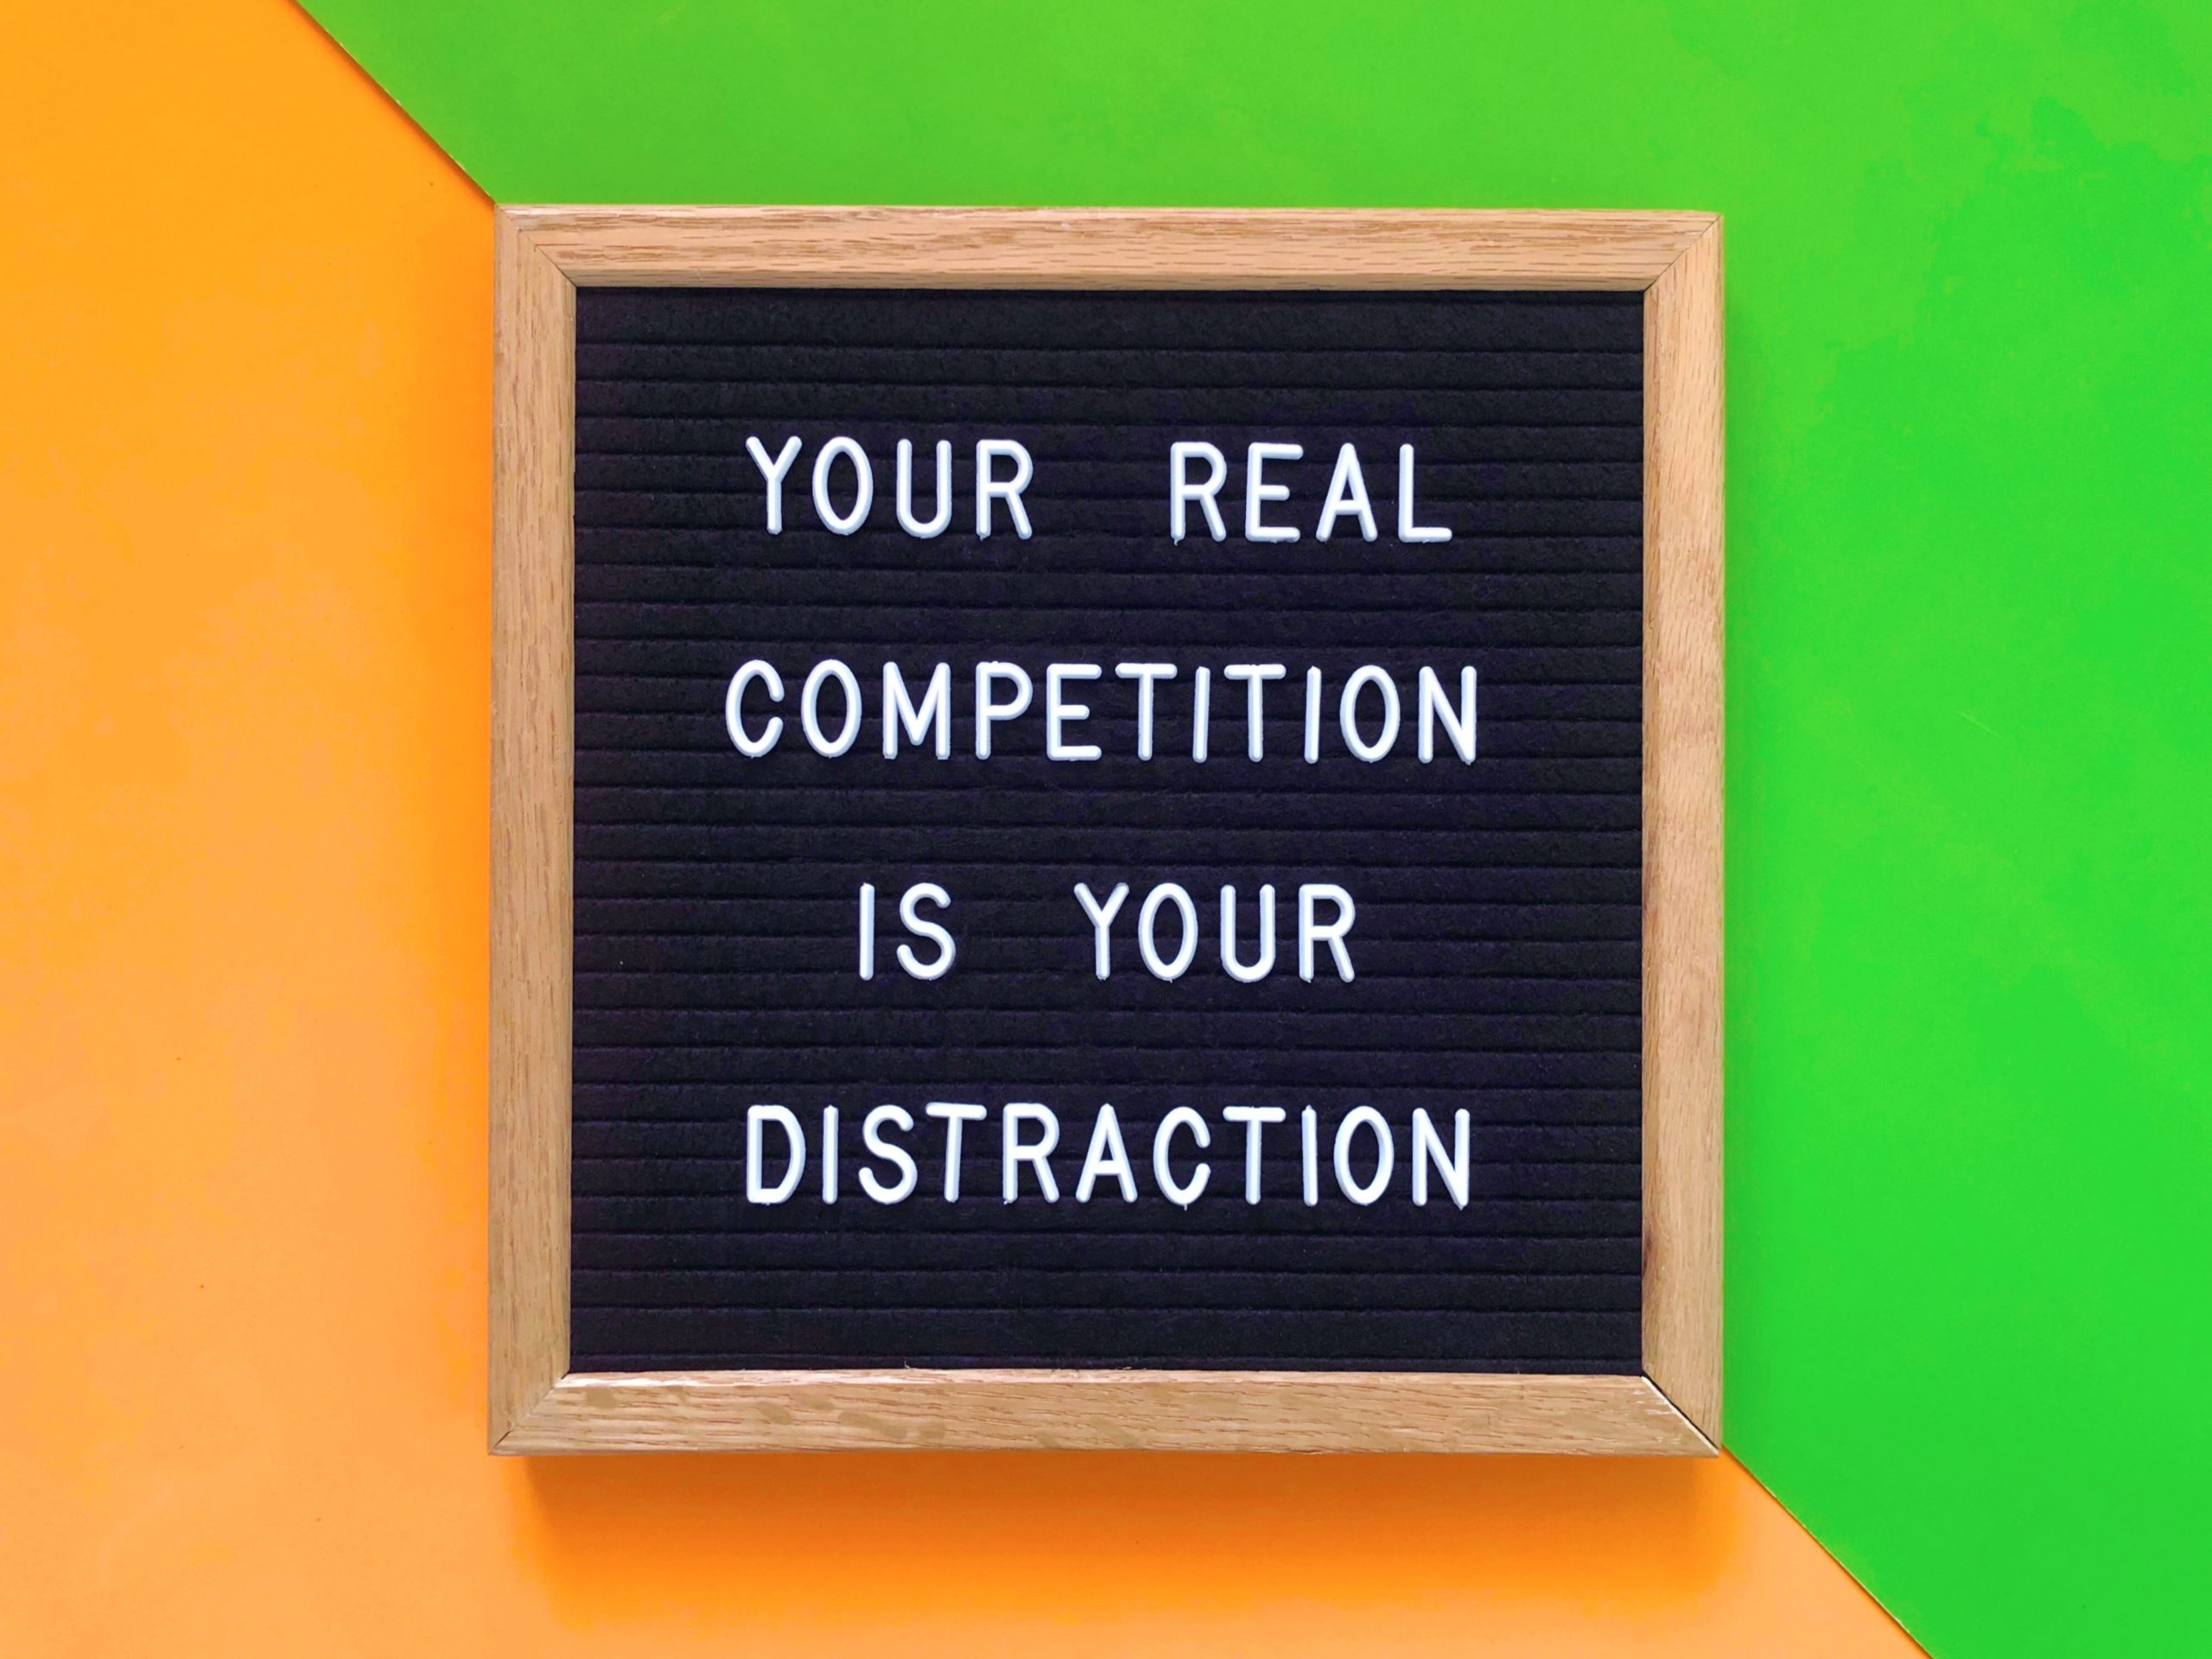 your-real-competition-is-your-distraction-quote_t20_aaWxmY-scaled